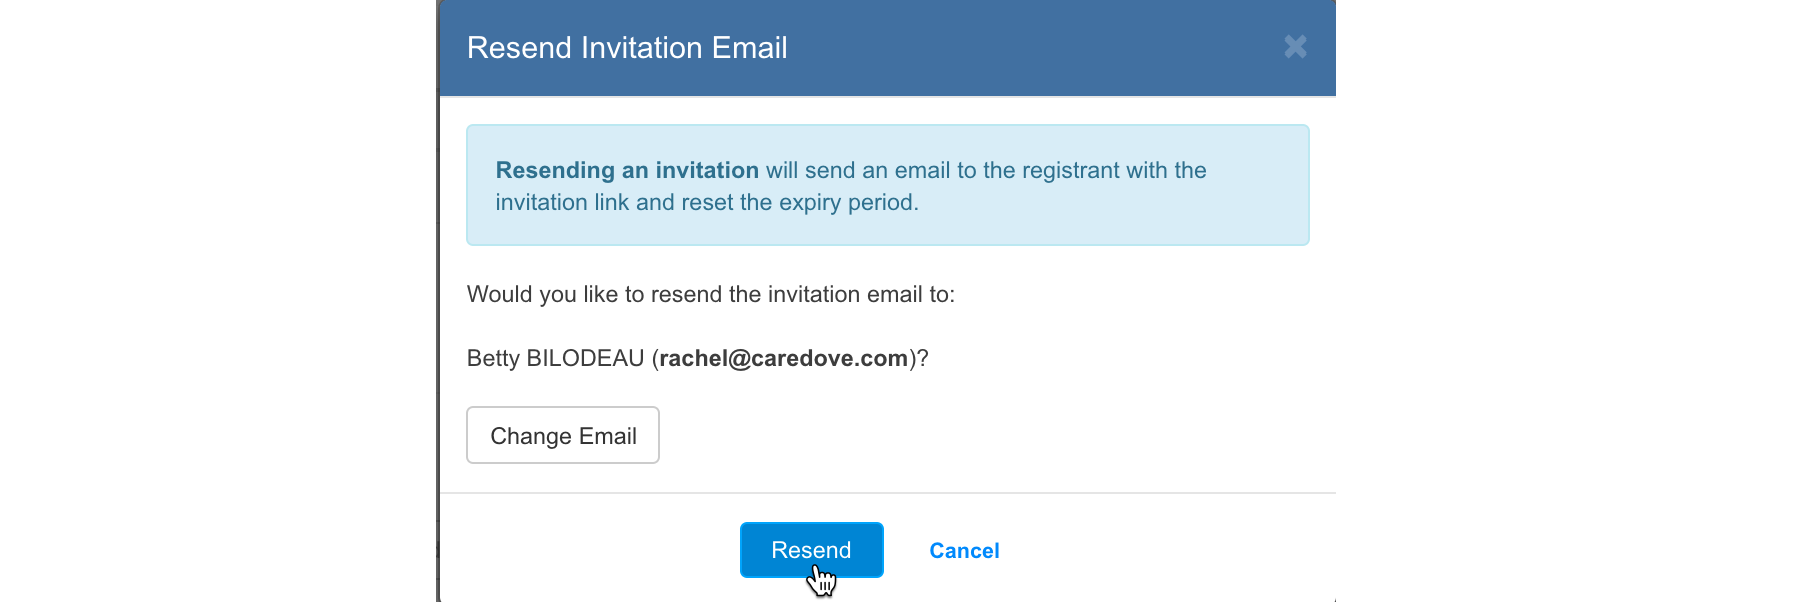 Resend Invitation Email button